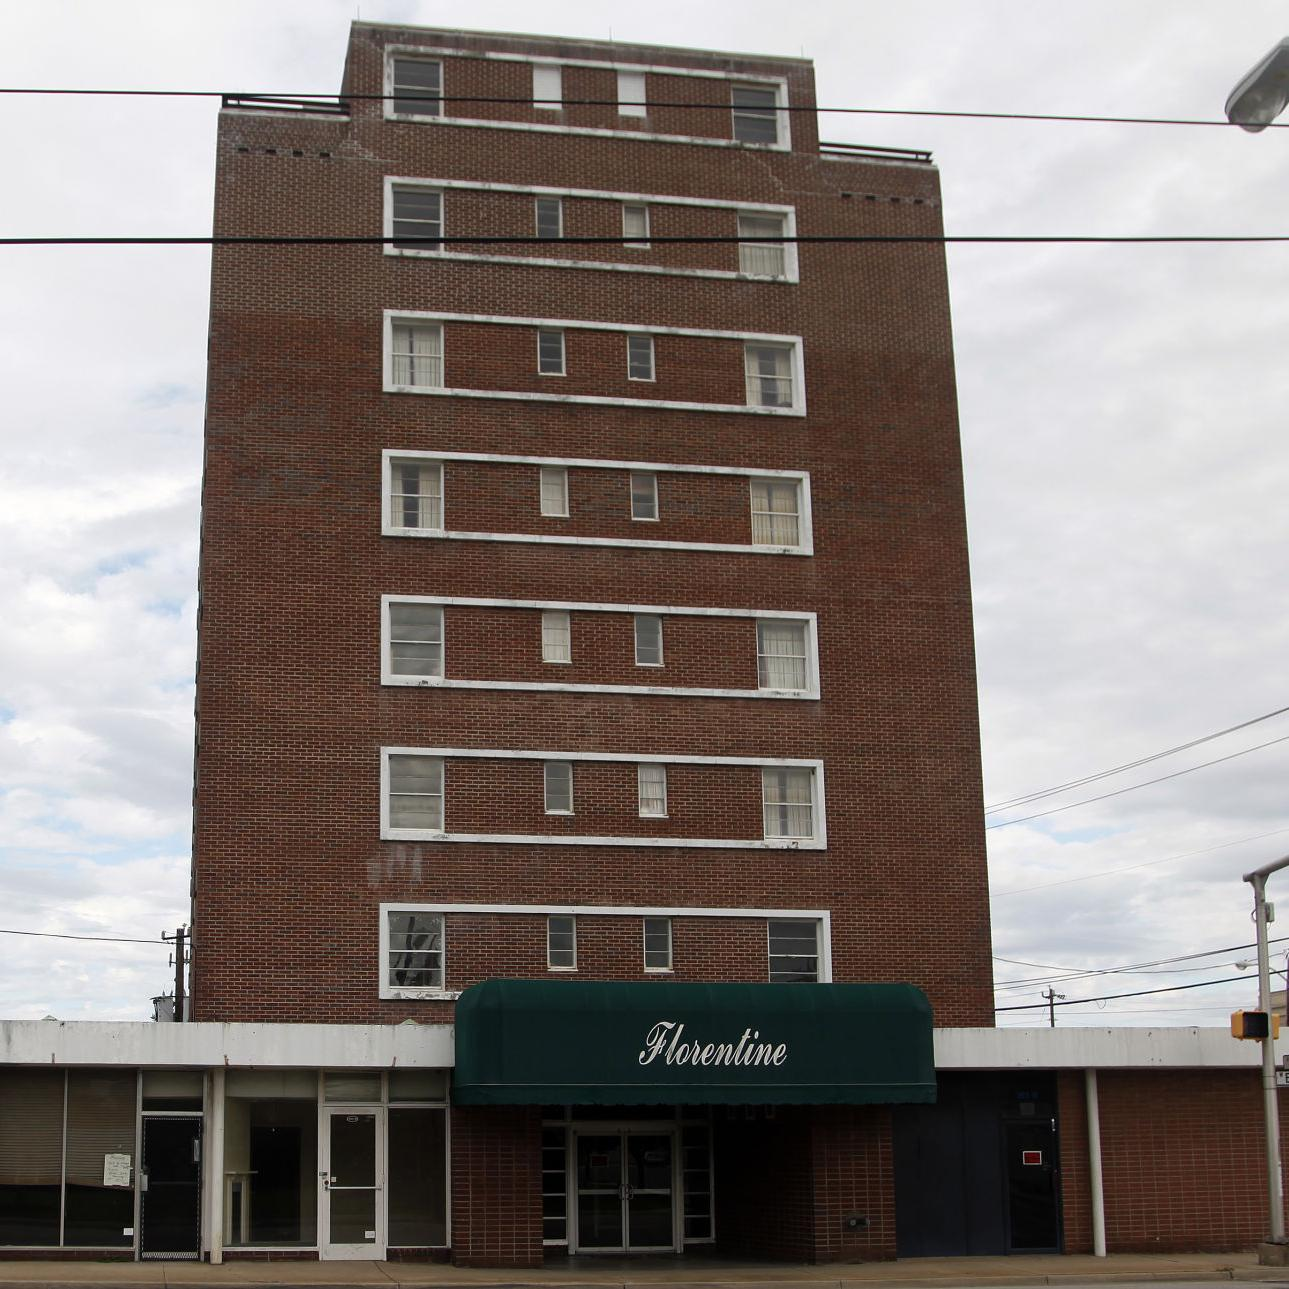 City Wants To Raze Florentine Building For Redevelopment Of